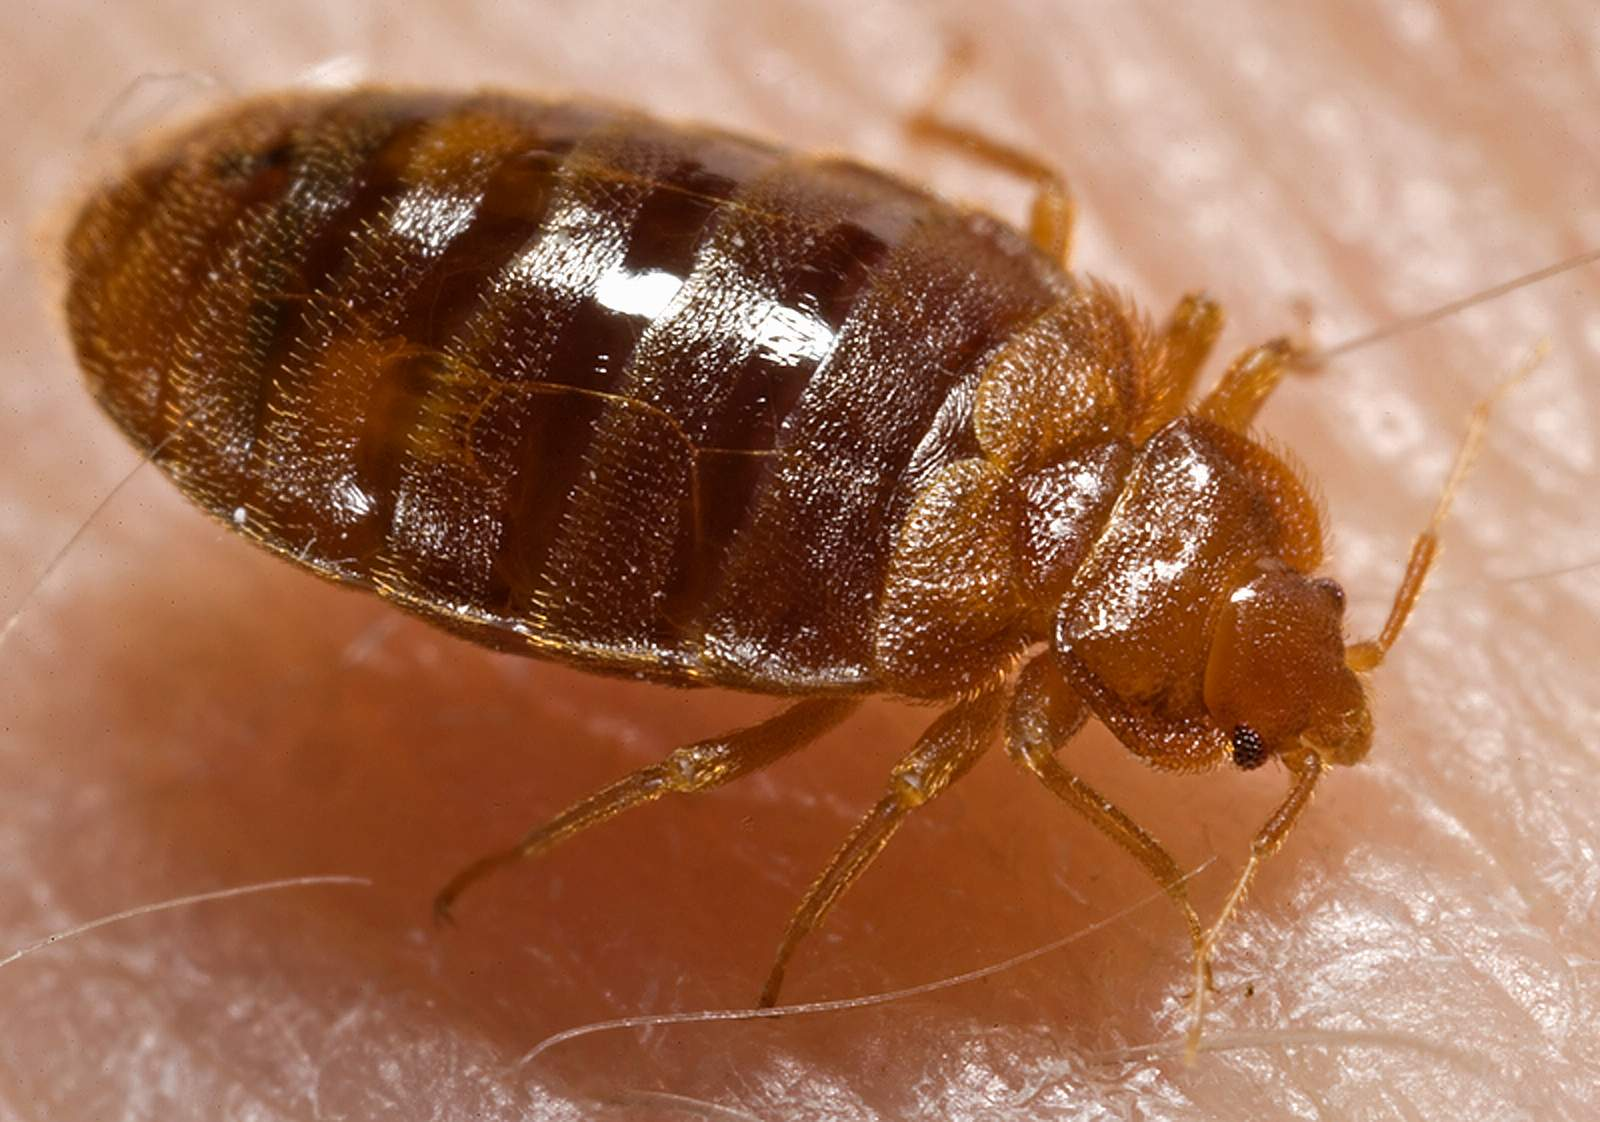 http://upload.wikimedia.org/wikipedia/commons/8/87/Bed_bug,_Cimex_lectularius.jpg